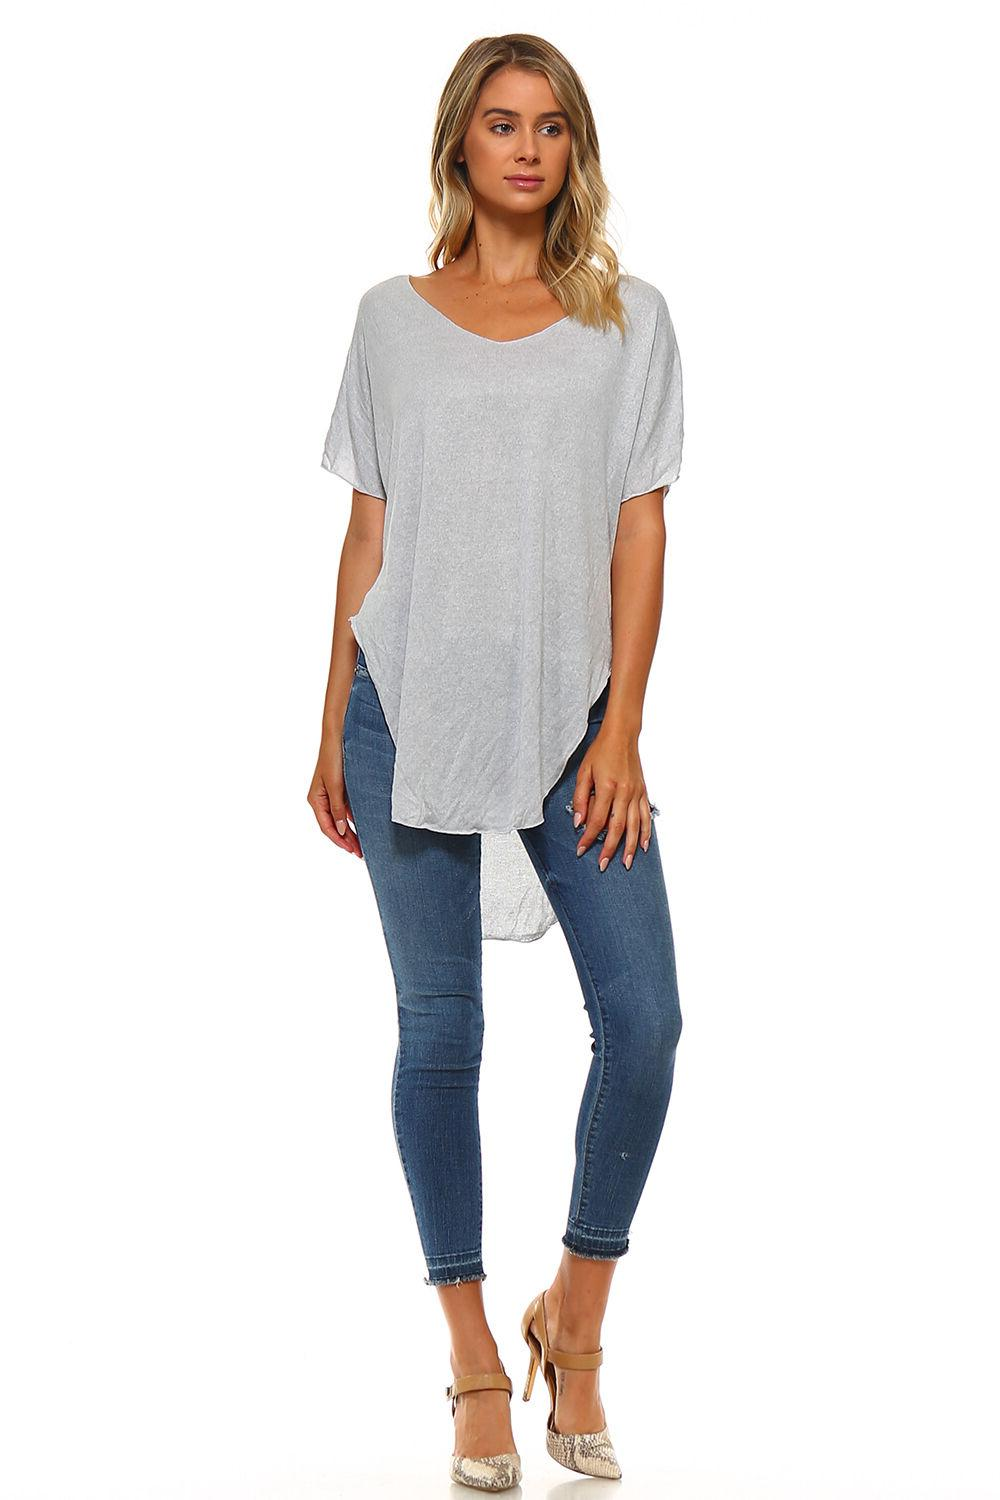 New Women's Long Hem Top USA